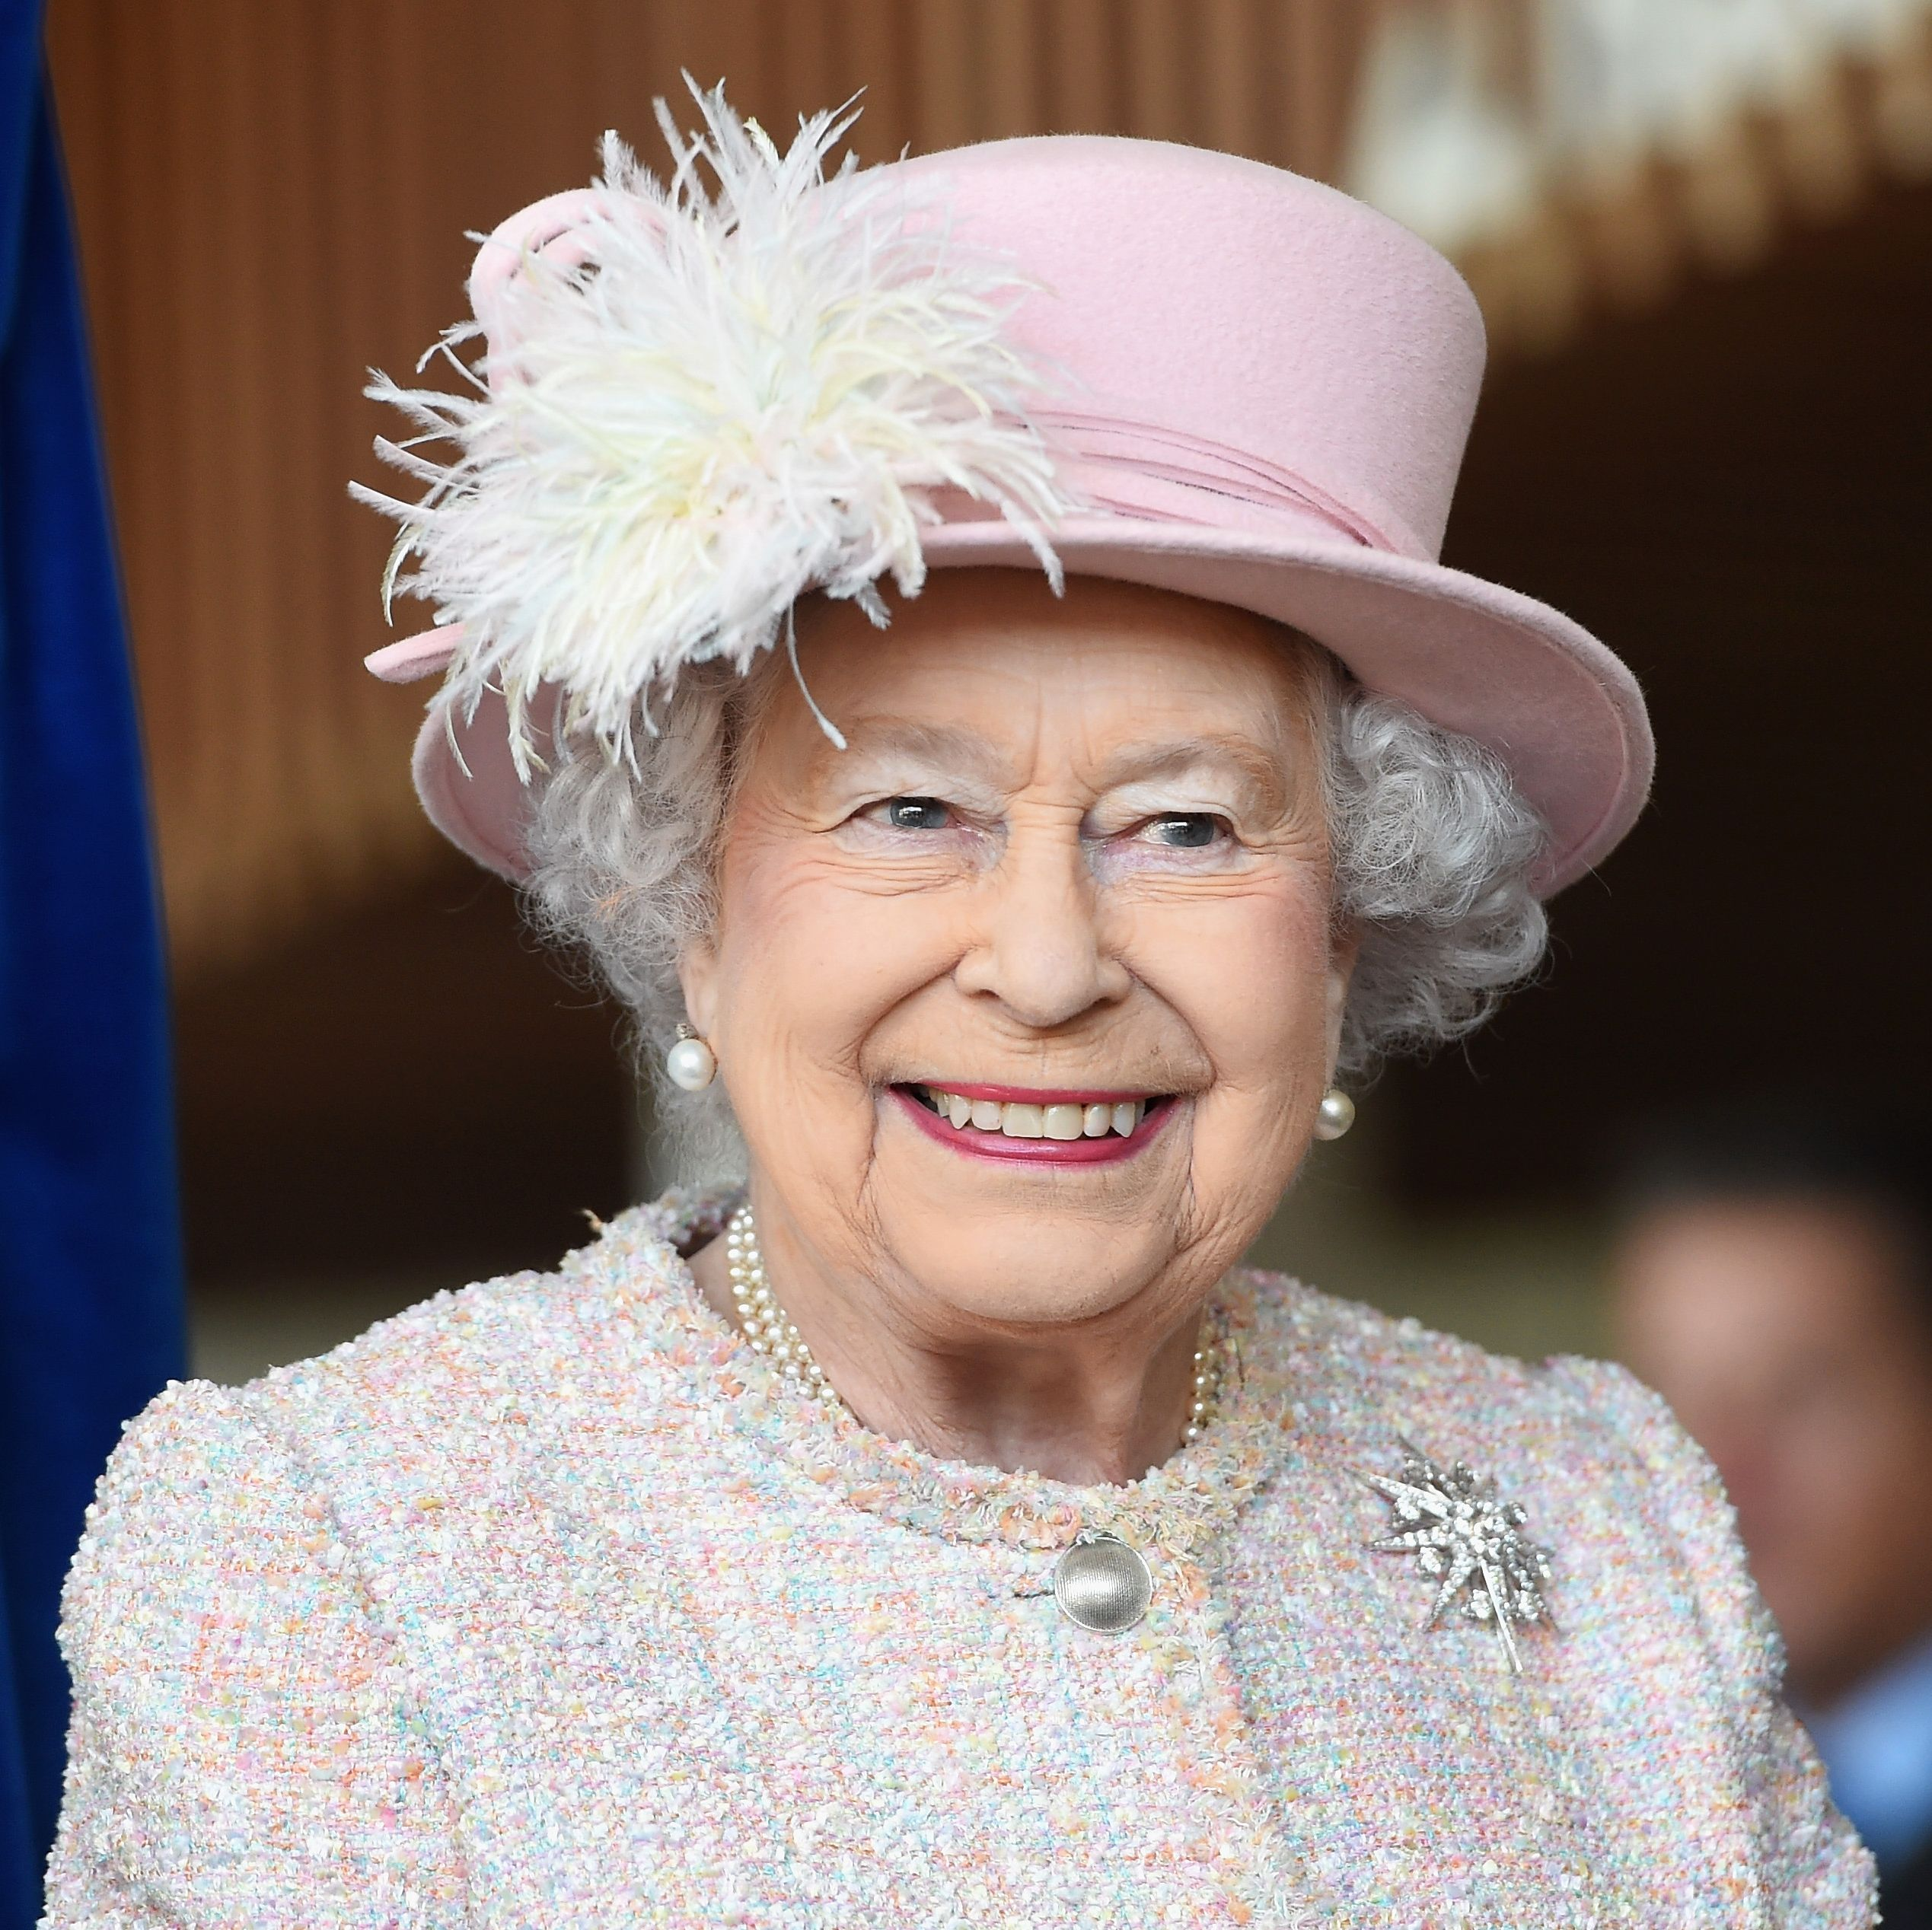 Queen Elizabeth Just Posted Her First Ever Instagram, So Influencers Better Watch Out